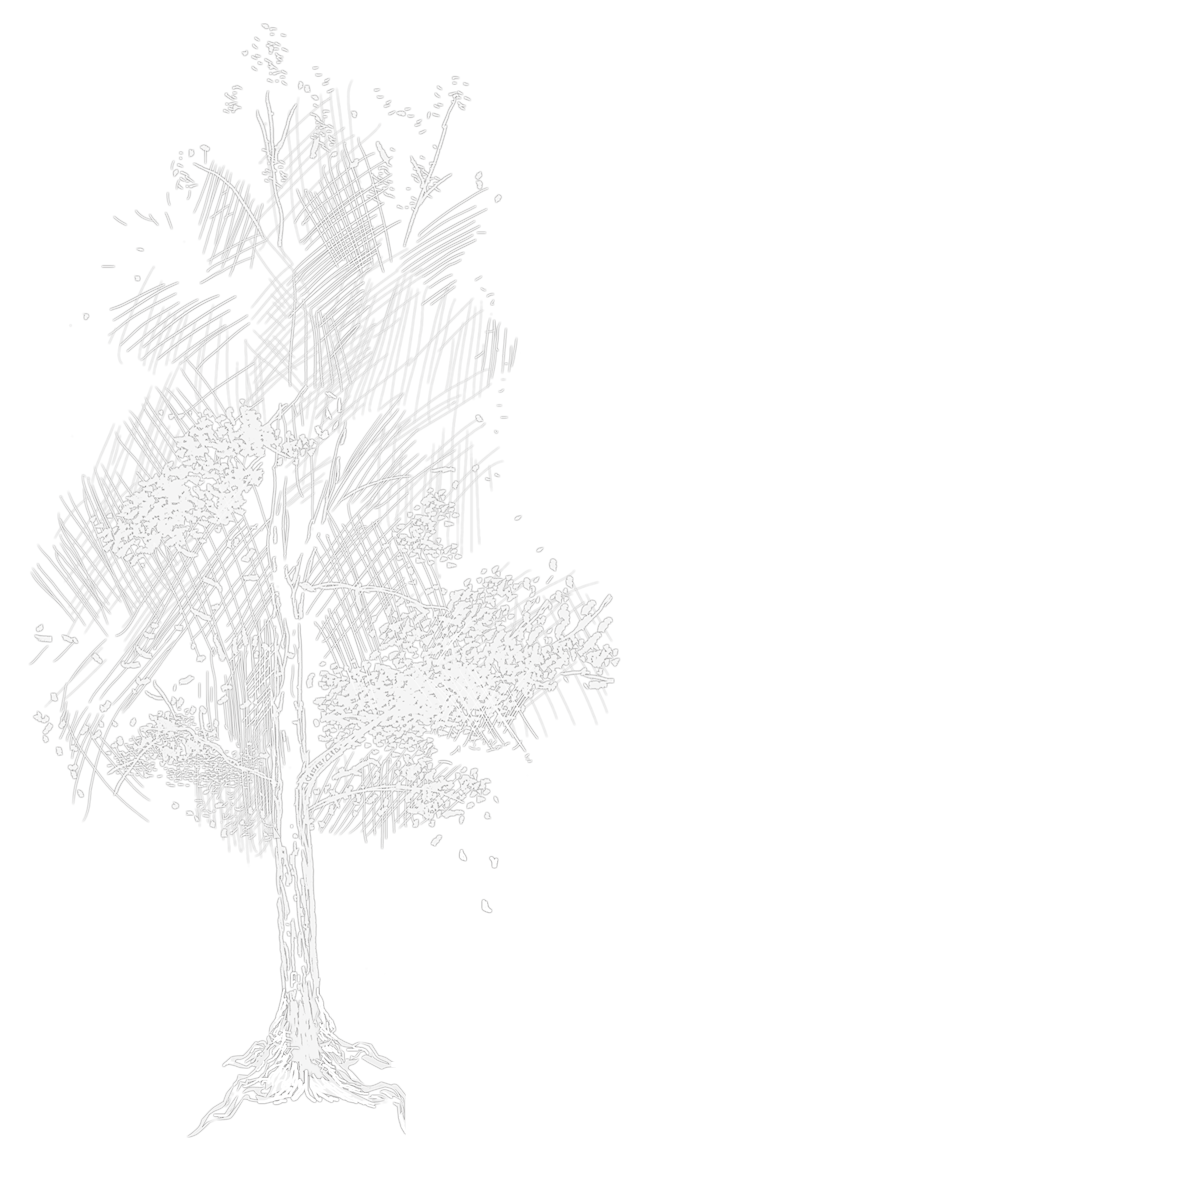 Improbable Stage: Producer in That Which Remains